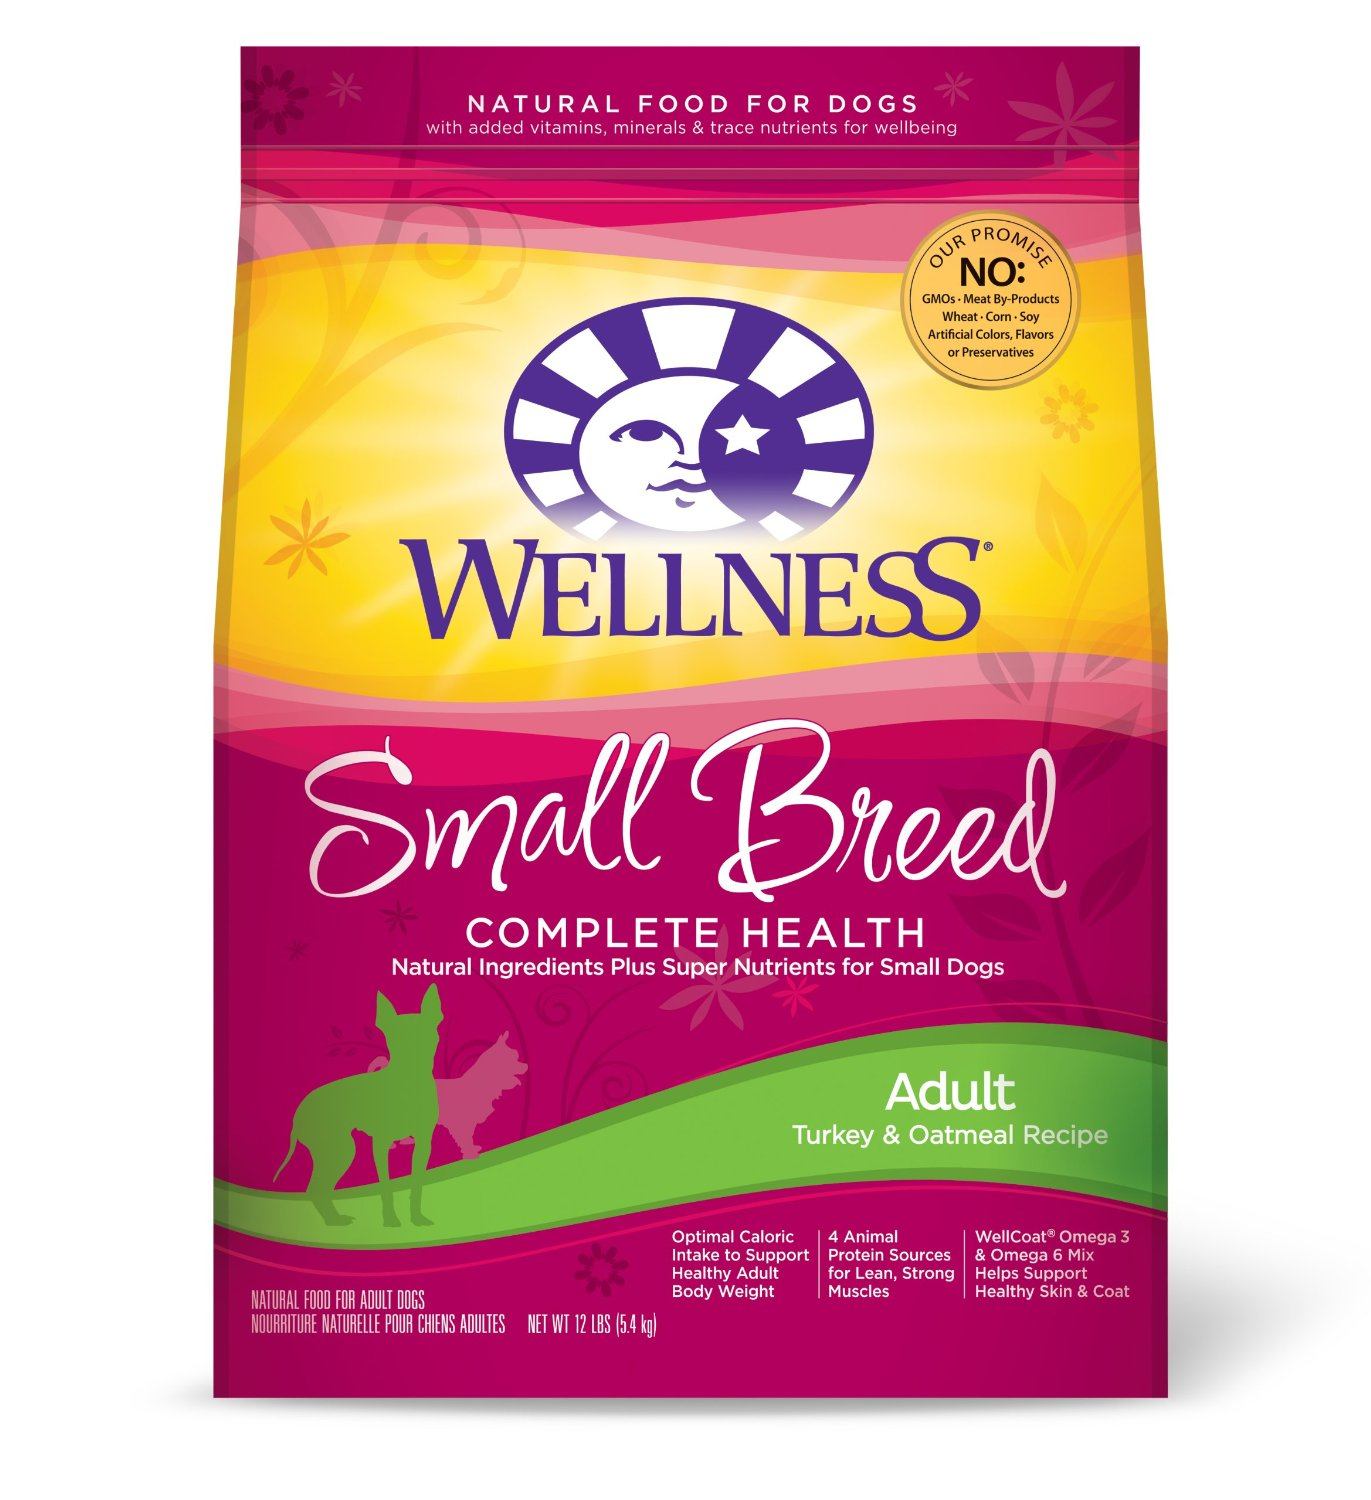 Small Breed Complete Health Adult Turkey & Oatmeal Recipe